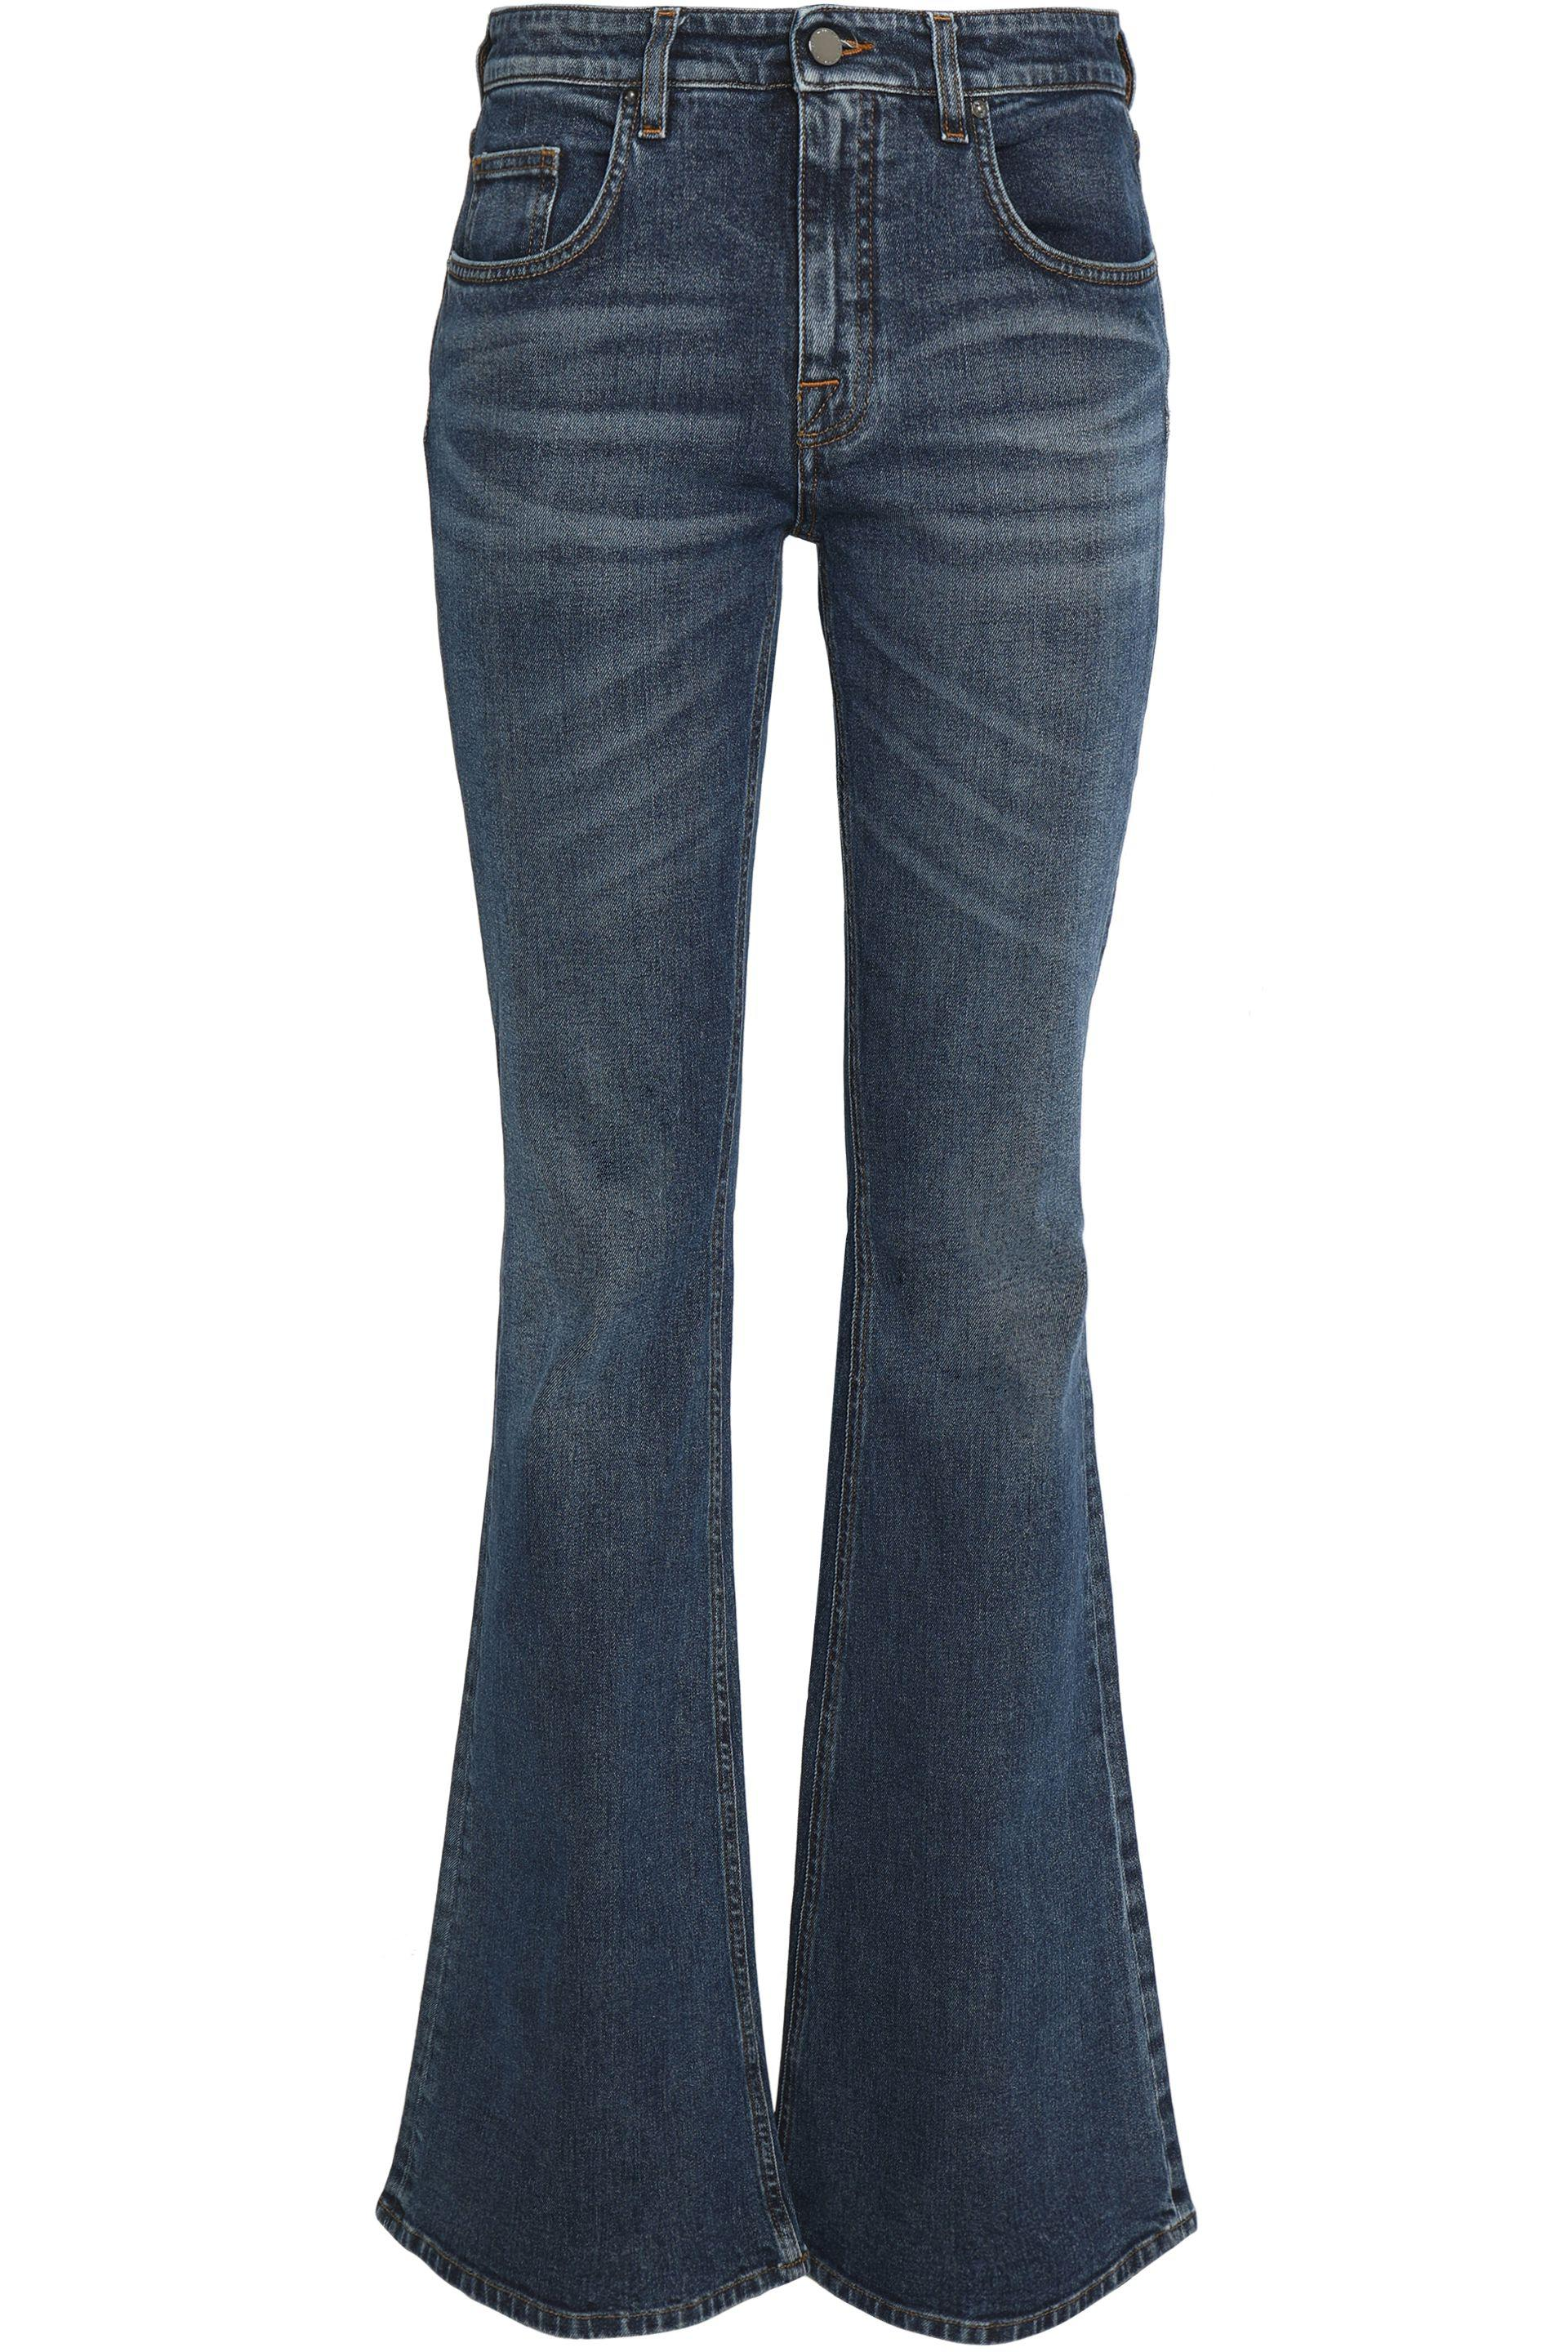 faded flared jeans - Blue Victoria Beckham CK8wCxpc